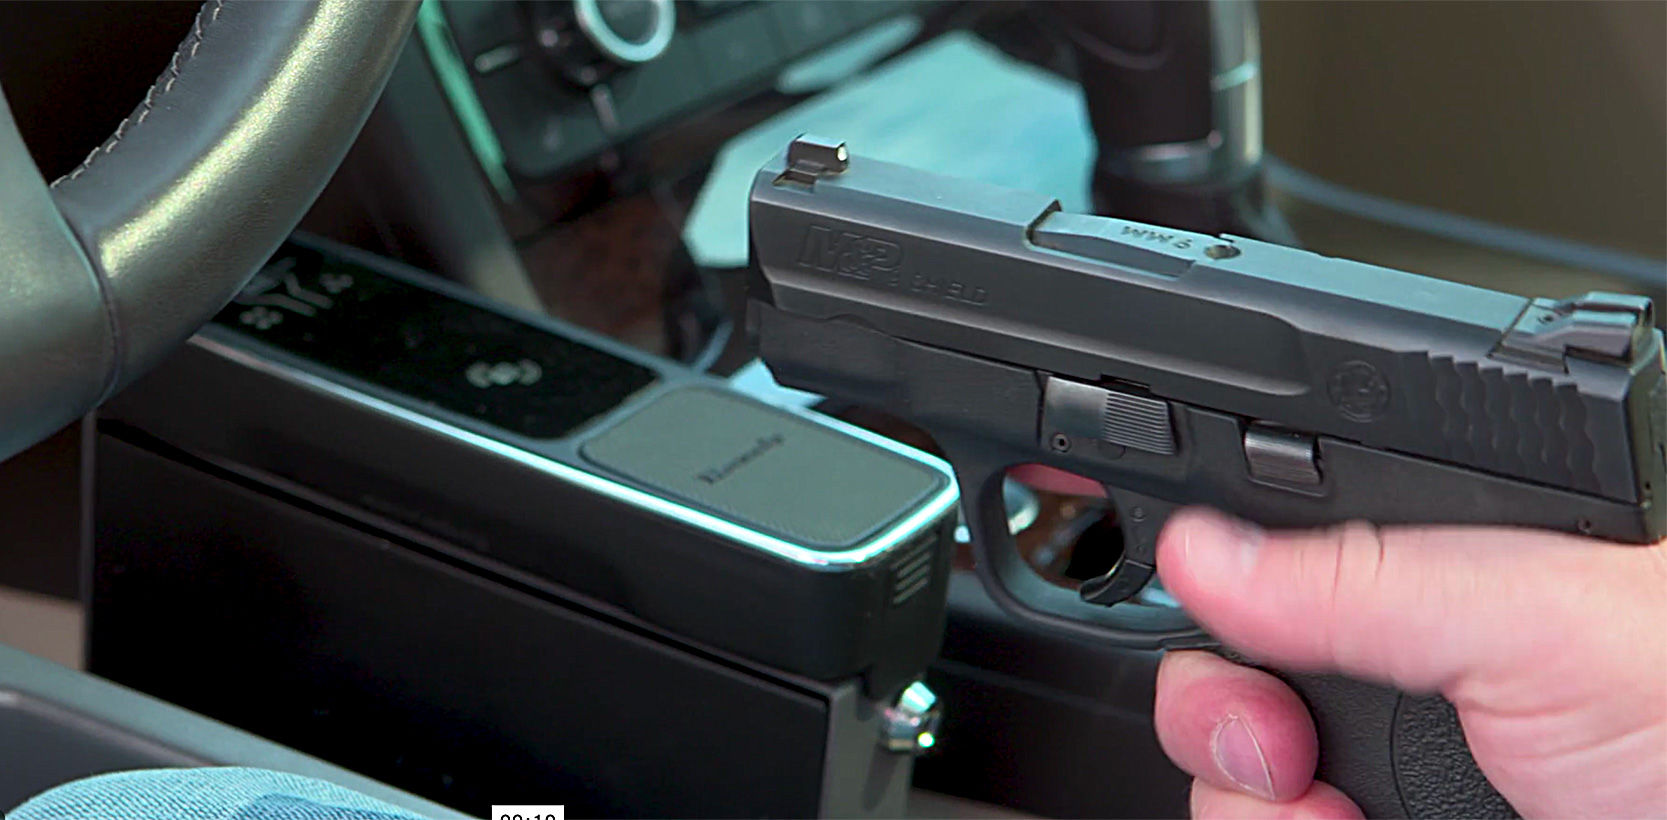 Slide number 3 Safety, Accessibility, and RFID technology Offering the quickest, most dependable access to your firearm while providing unmatched security from unauthorized users.View RAPiD® Safes